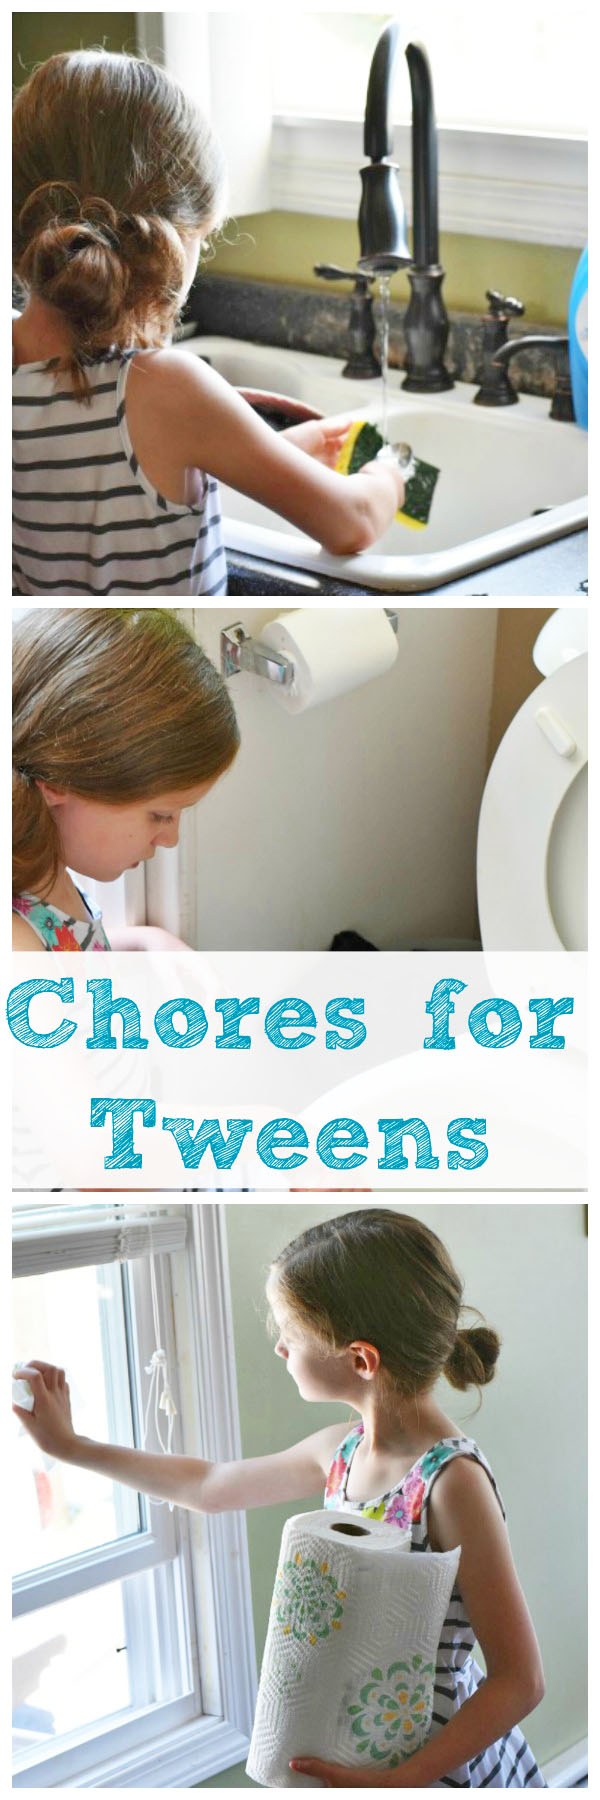 chores-for-tweens